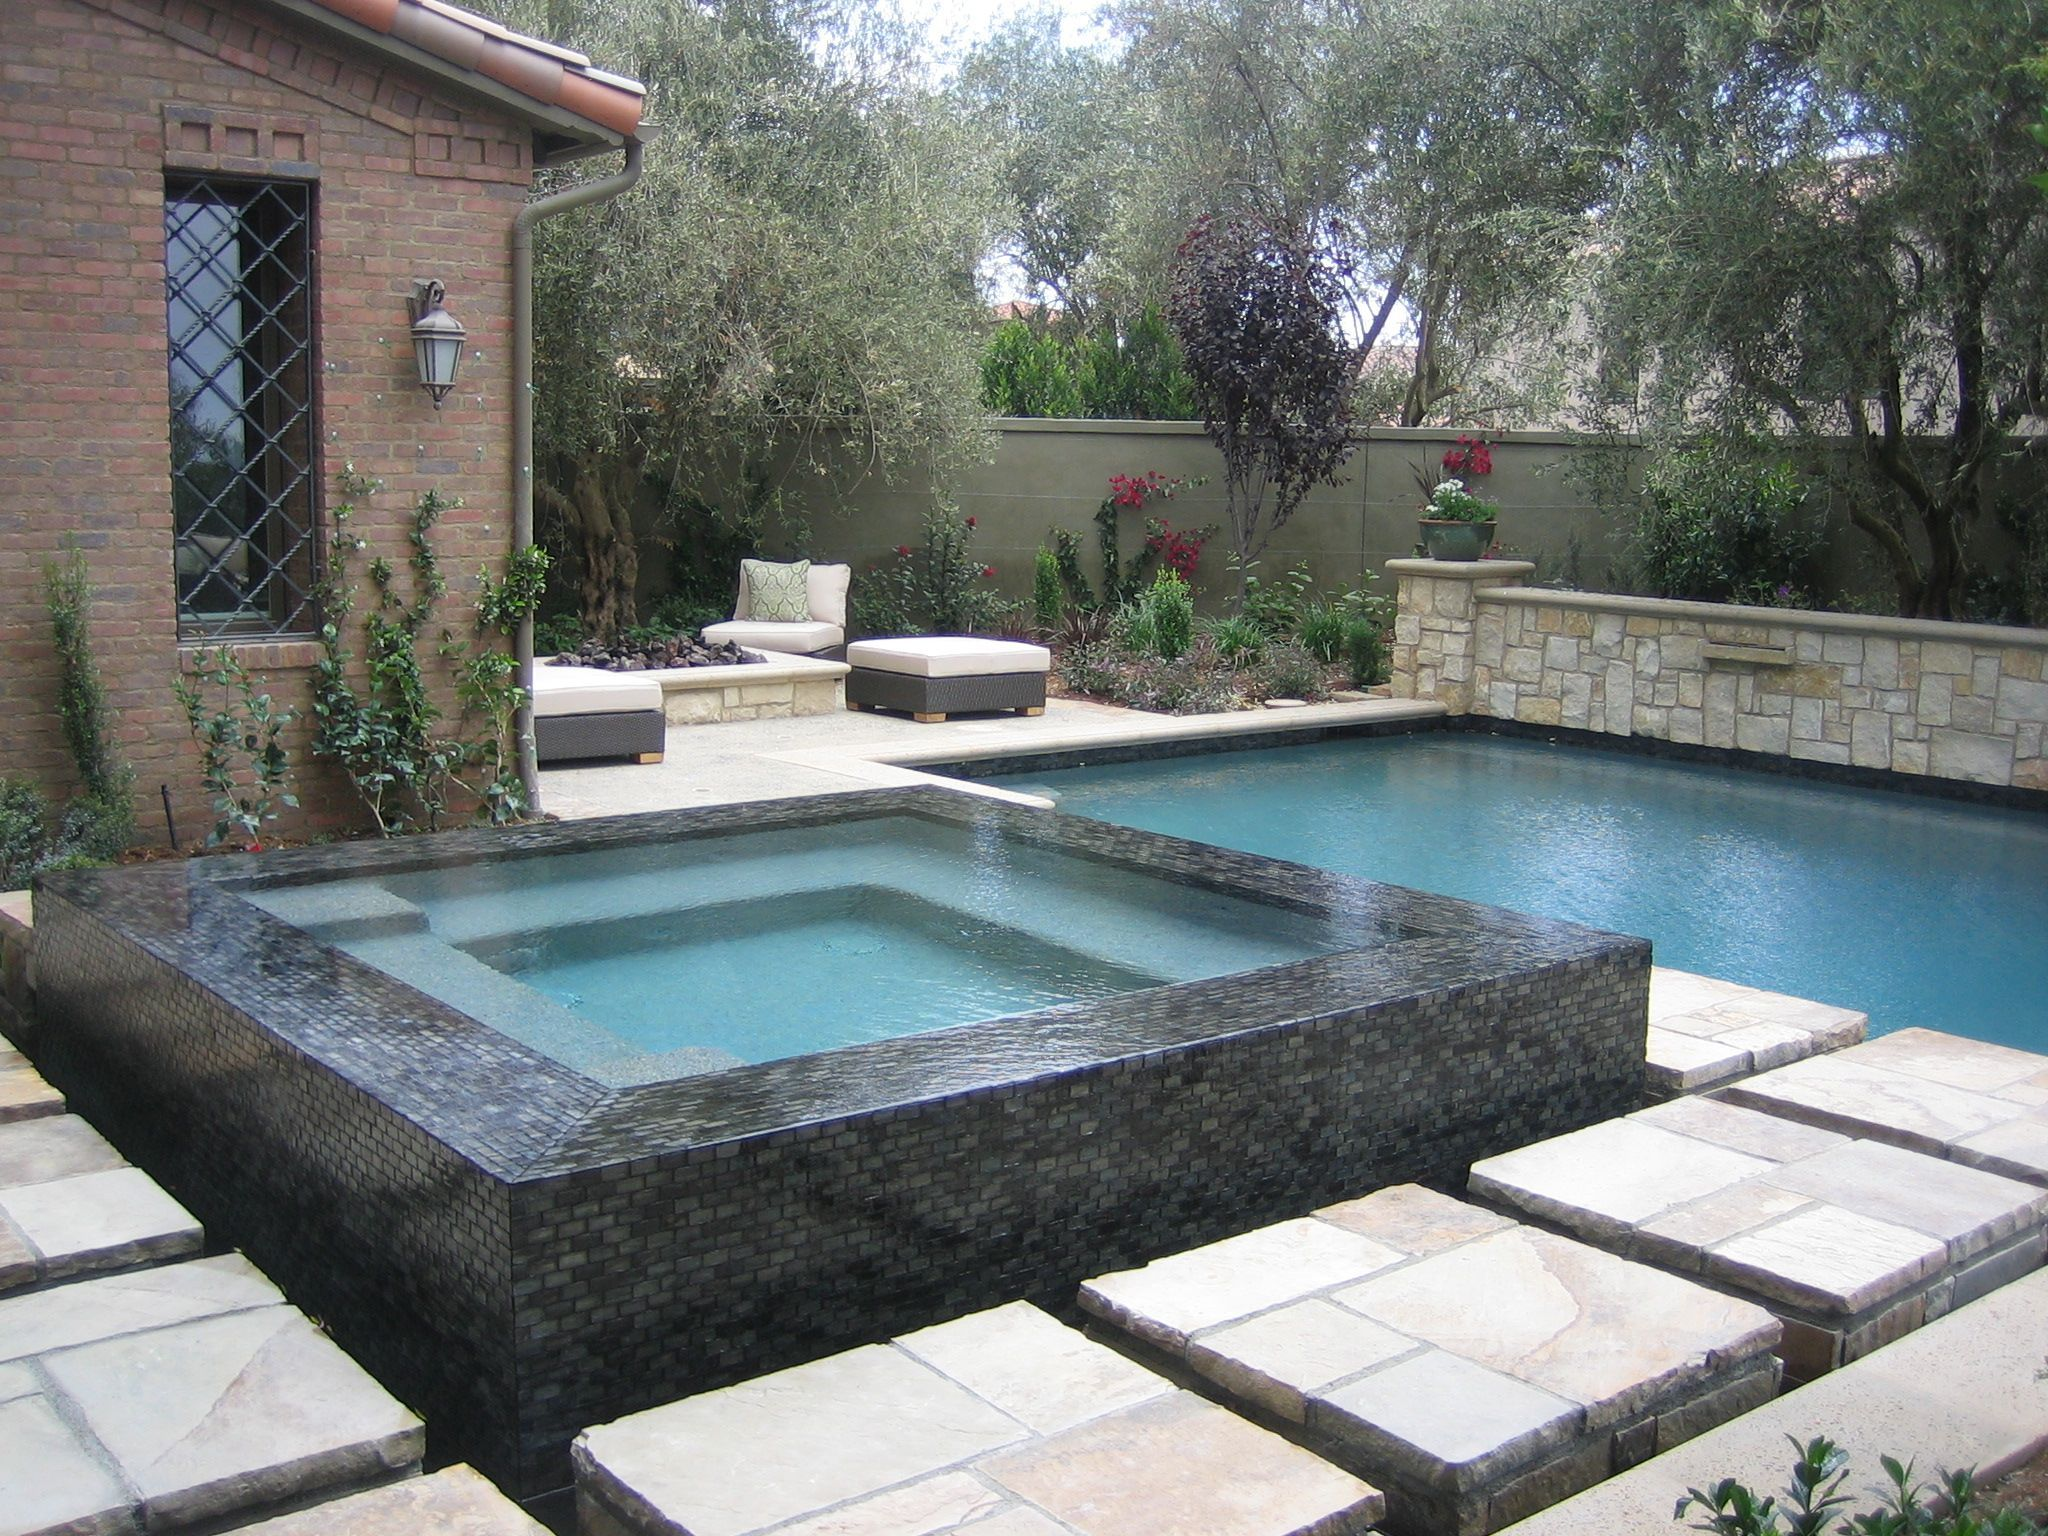 Knife edge pool 2 modern pool - Seaglass Tile Spa With Infinity Edge And Surrounded By Stone Stepping Stones Leading To Pool